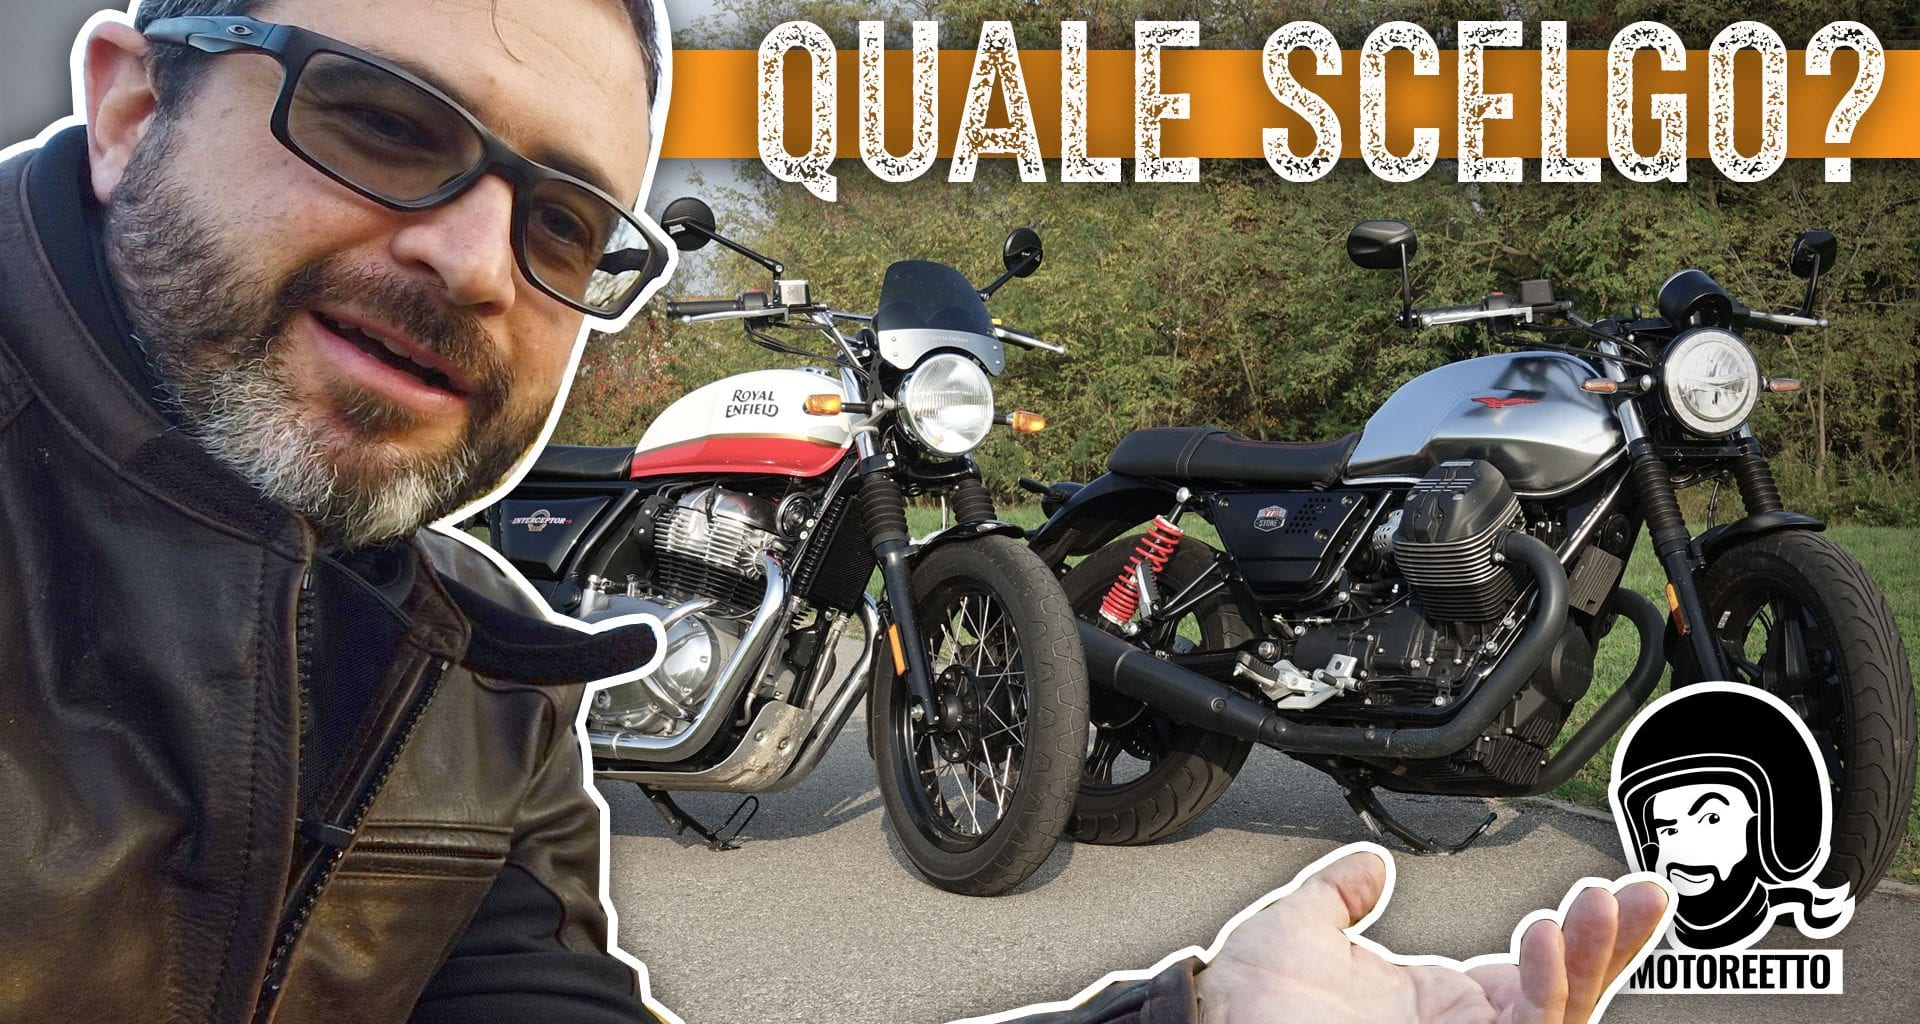 v7 interceptor comparativa motoguzzi royal enfield di motoreetto